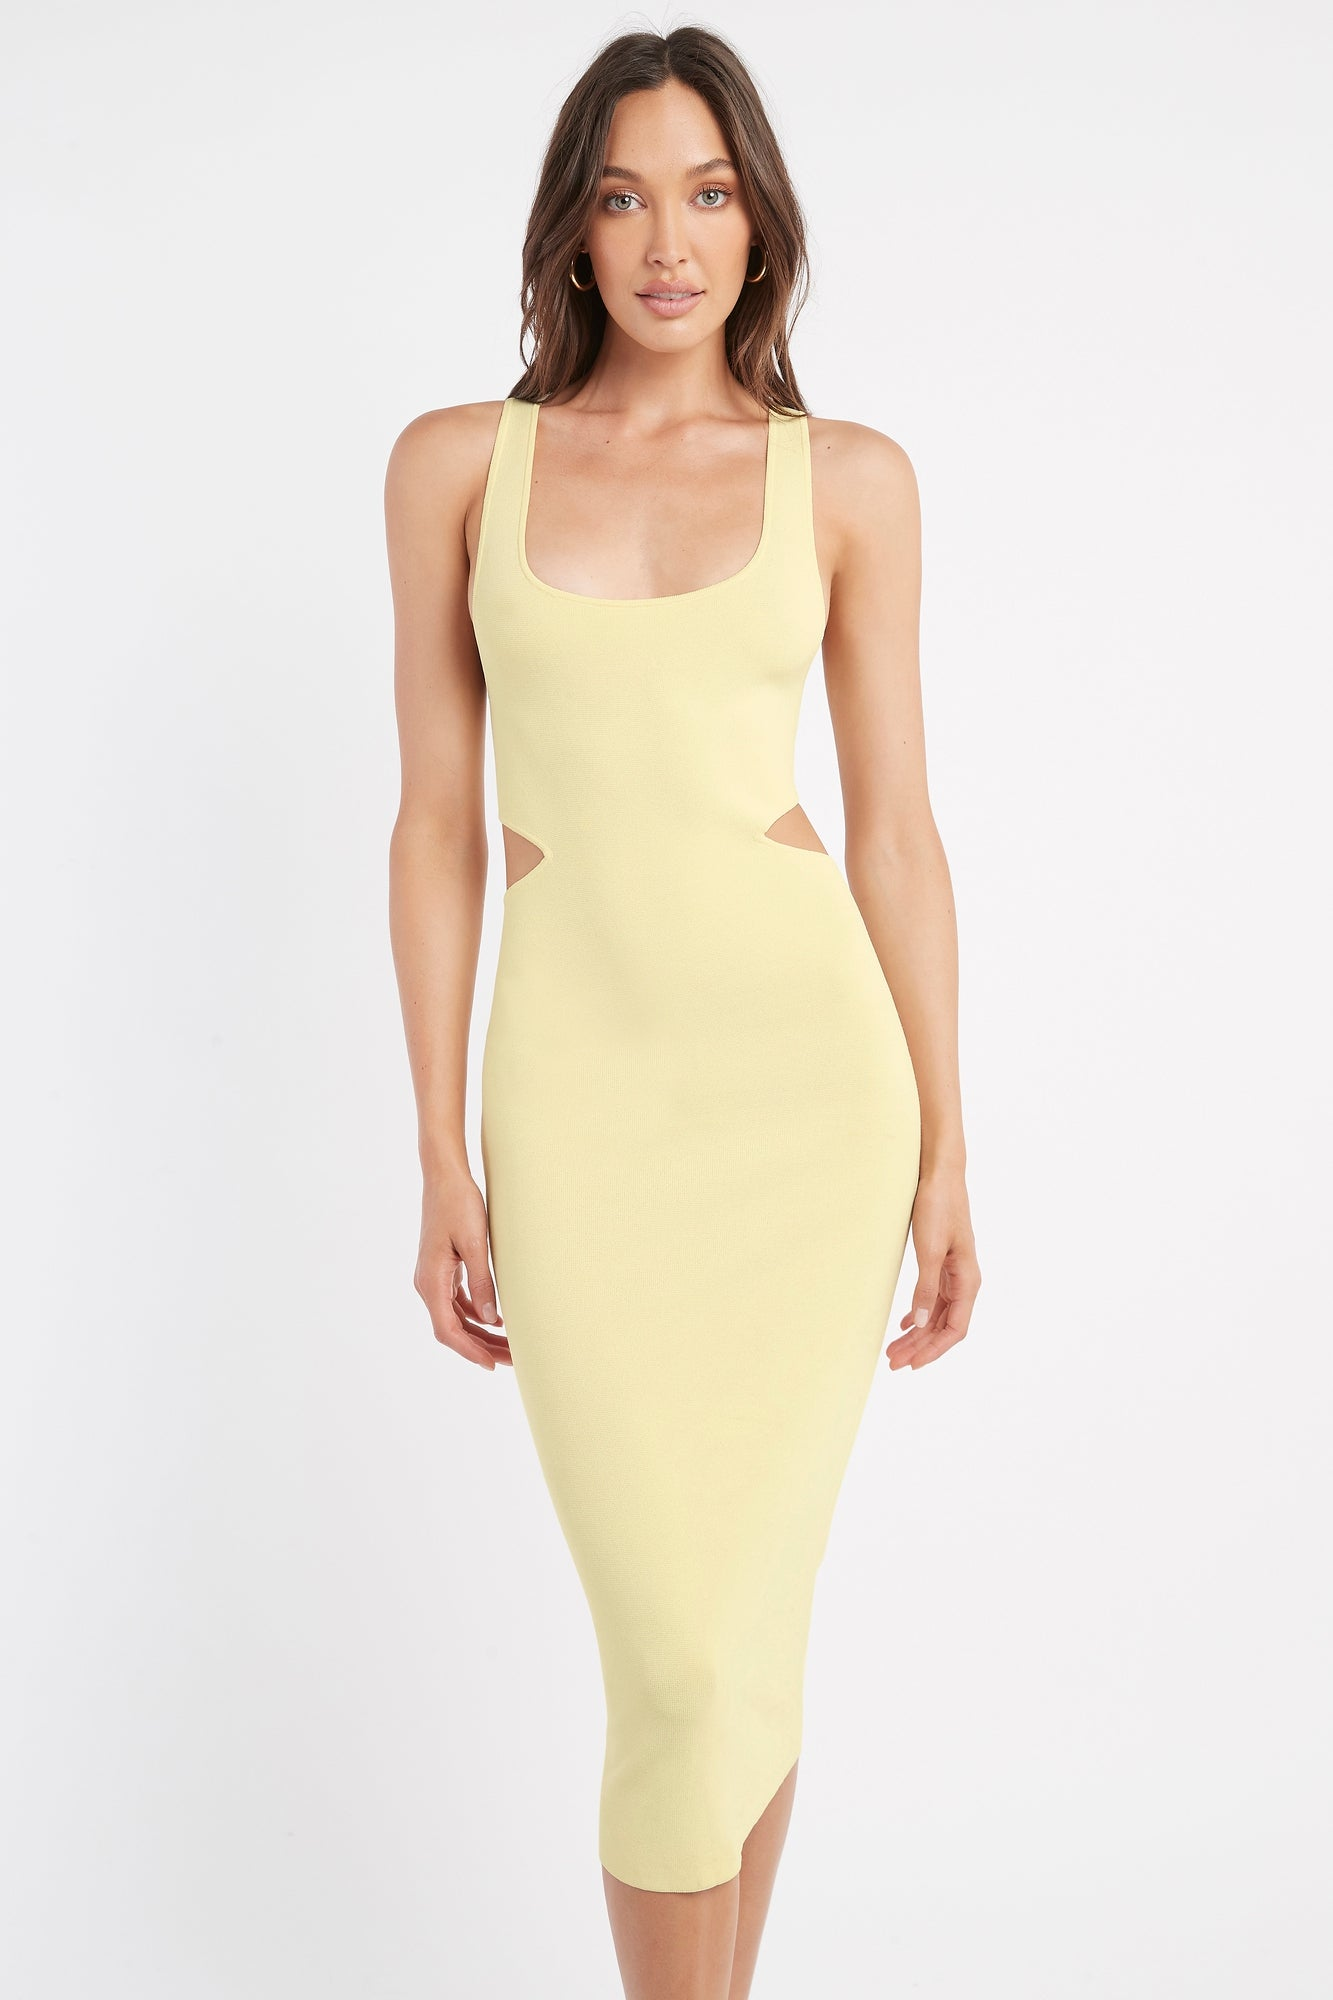 Malone Cutout Dress